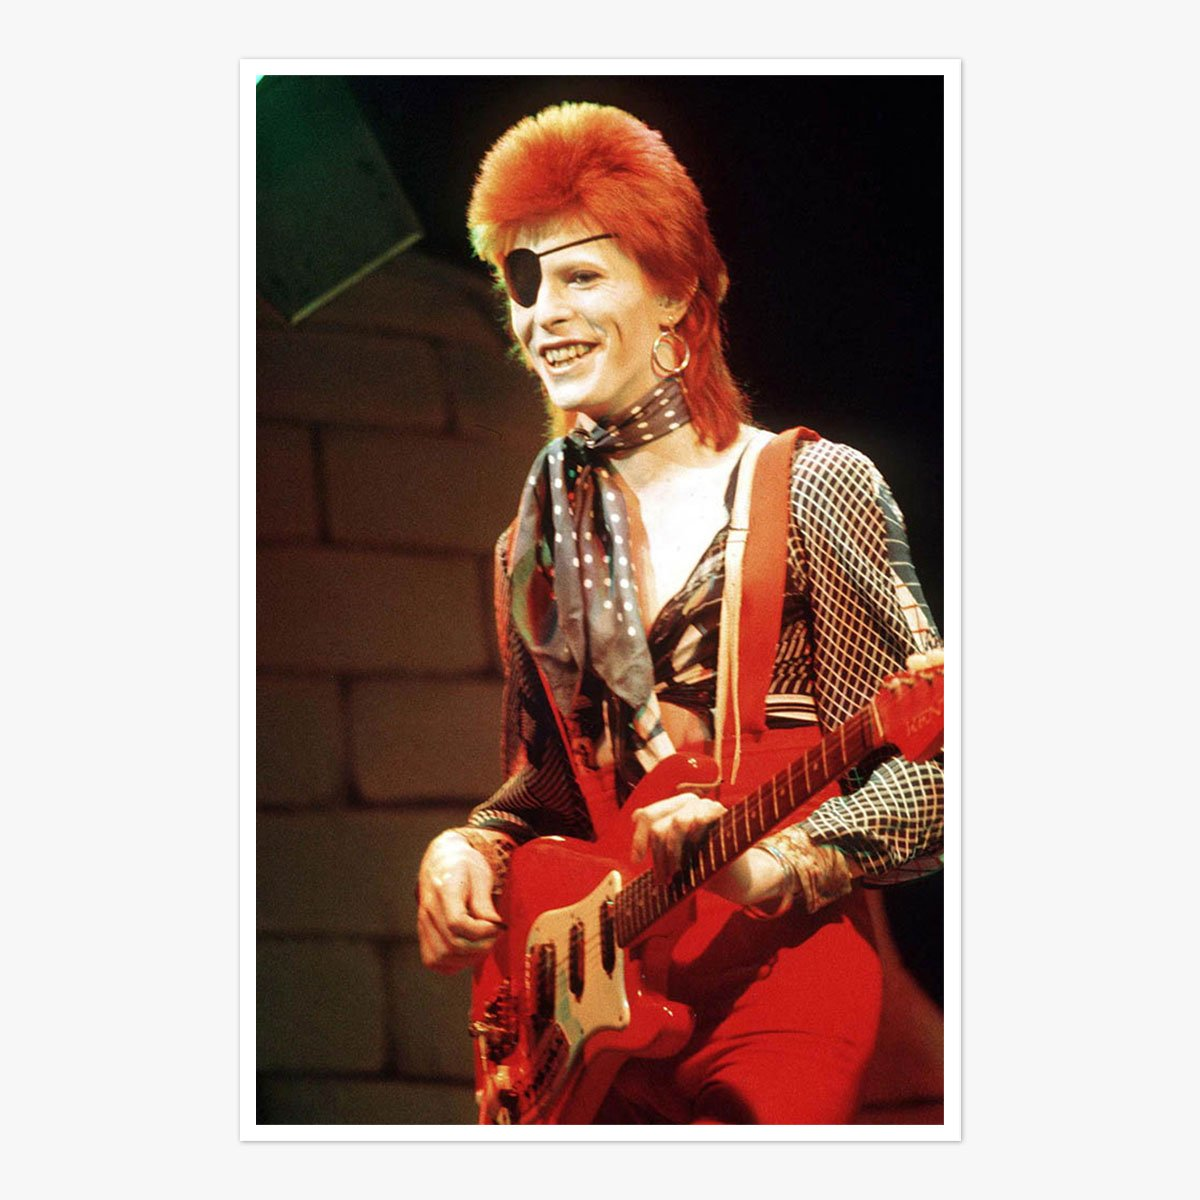 Ziggy On Stage 1973 by Roger Bamber